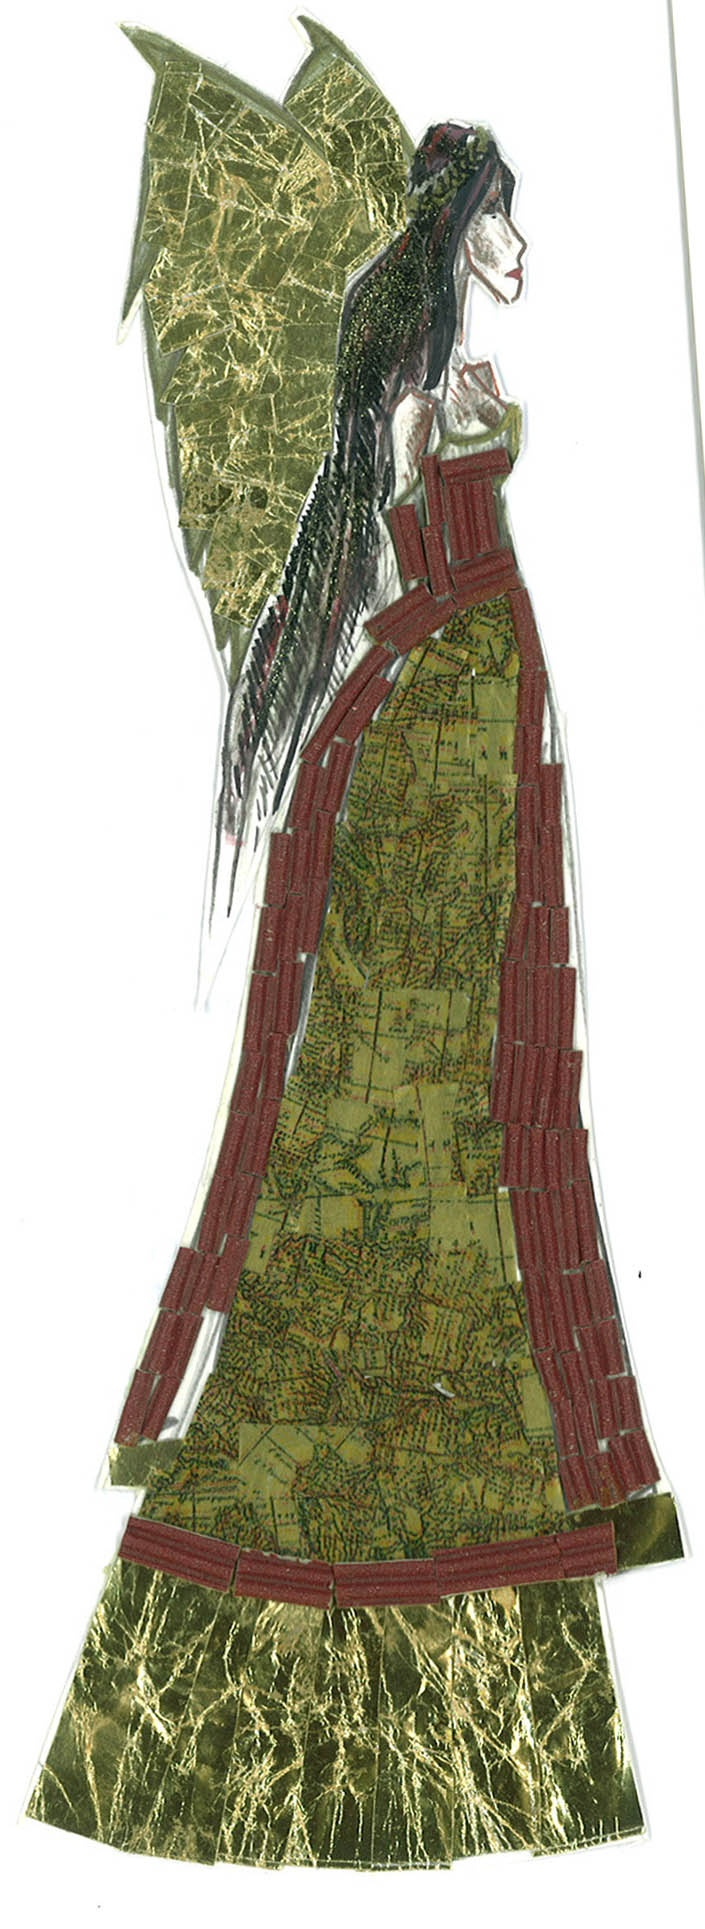 Collage with wrapping paper, corrugated cardboard and nail polish - Trish Chamberlain